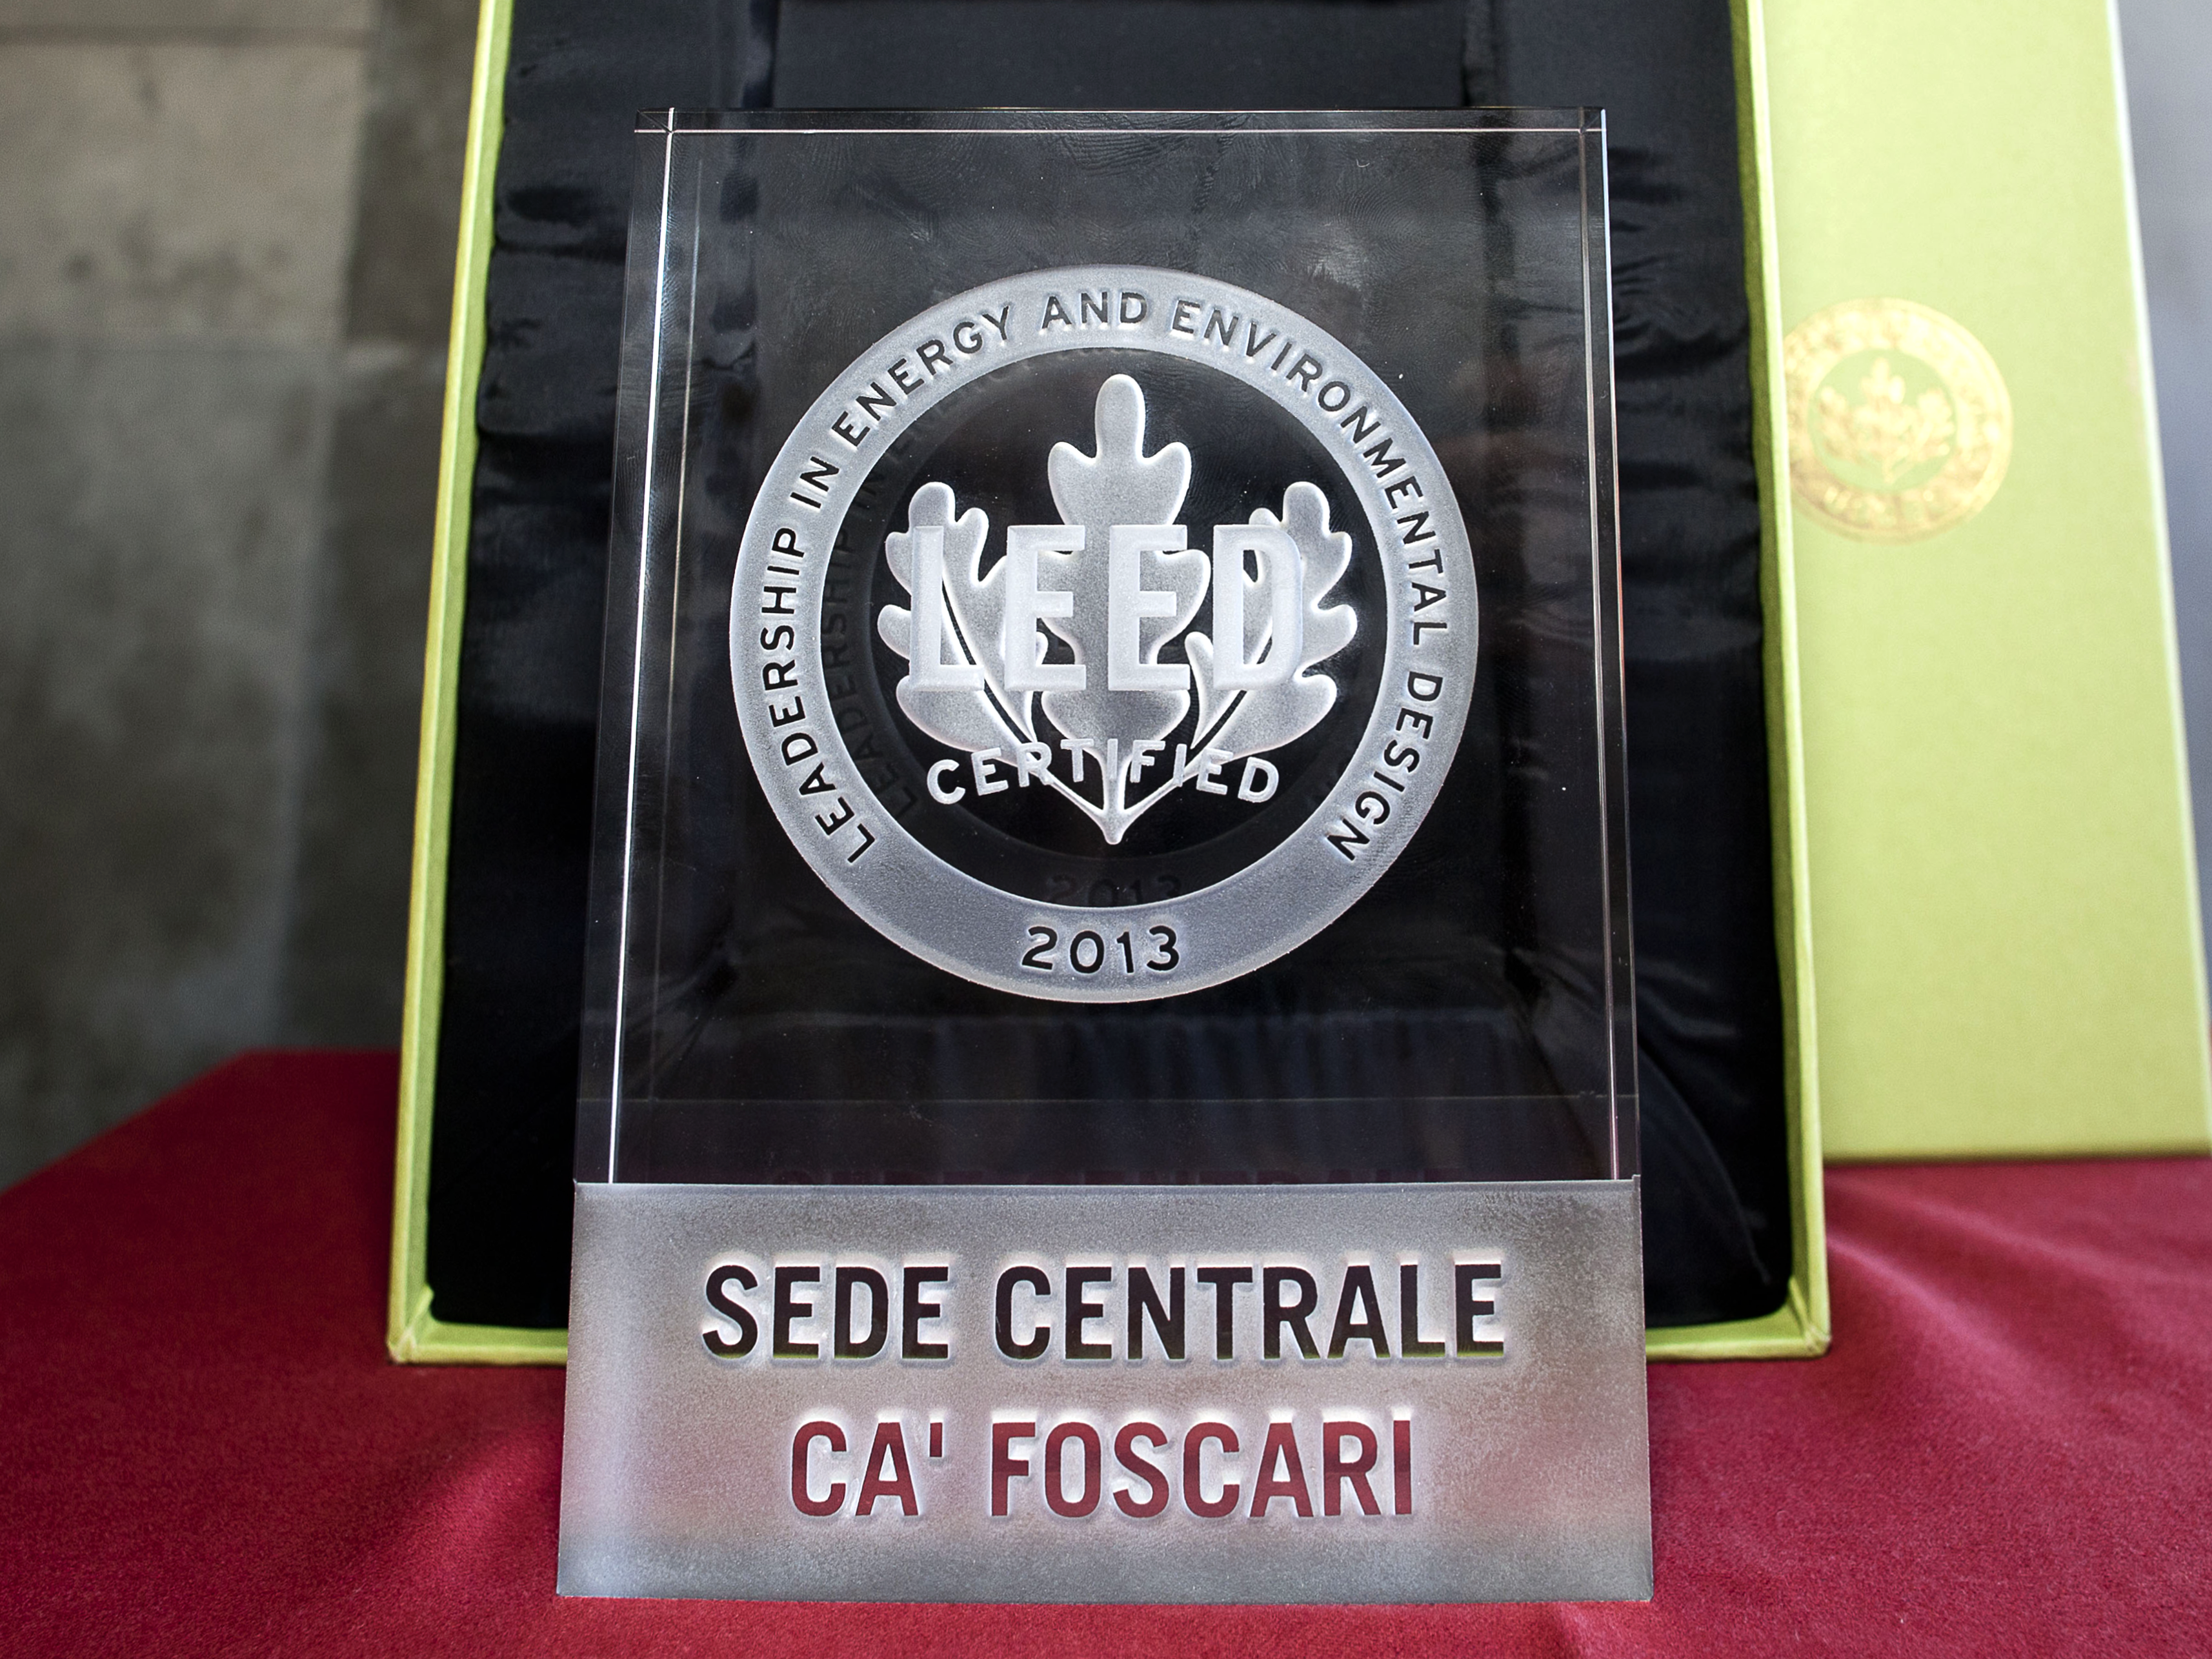 Leed Certification Sustainable Ca Foscari